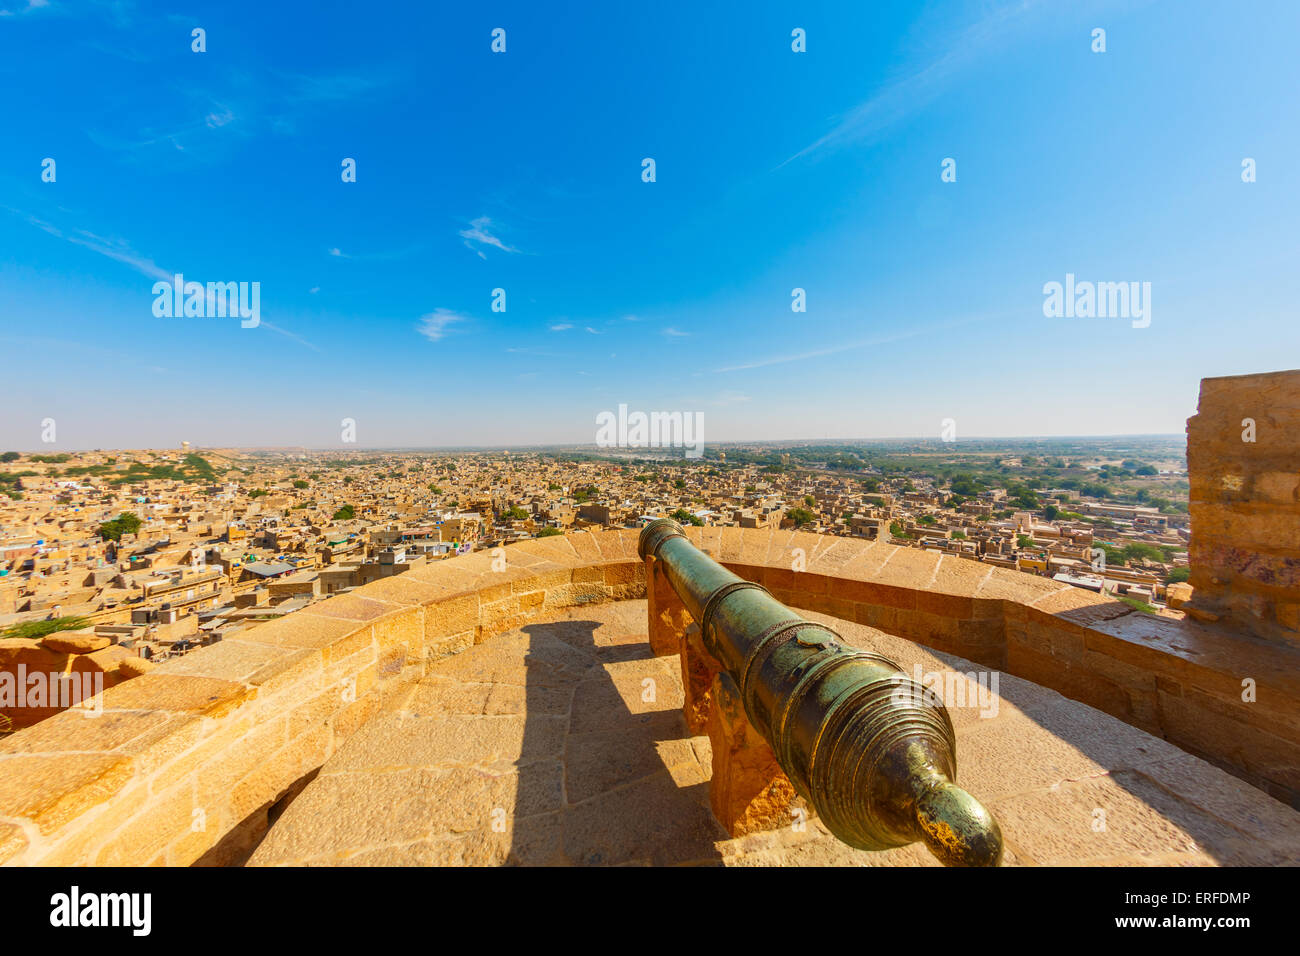 Ancient cannon in Jaisalmer fort, Rajasthan, India - Stock Image